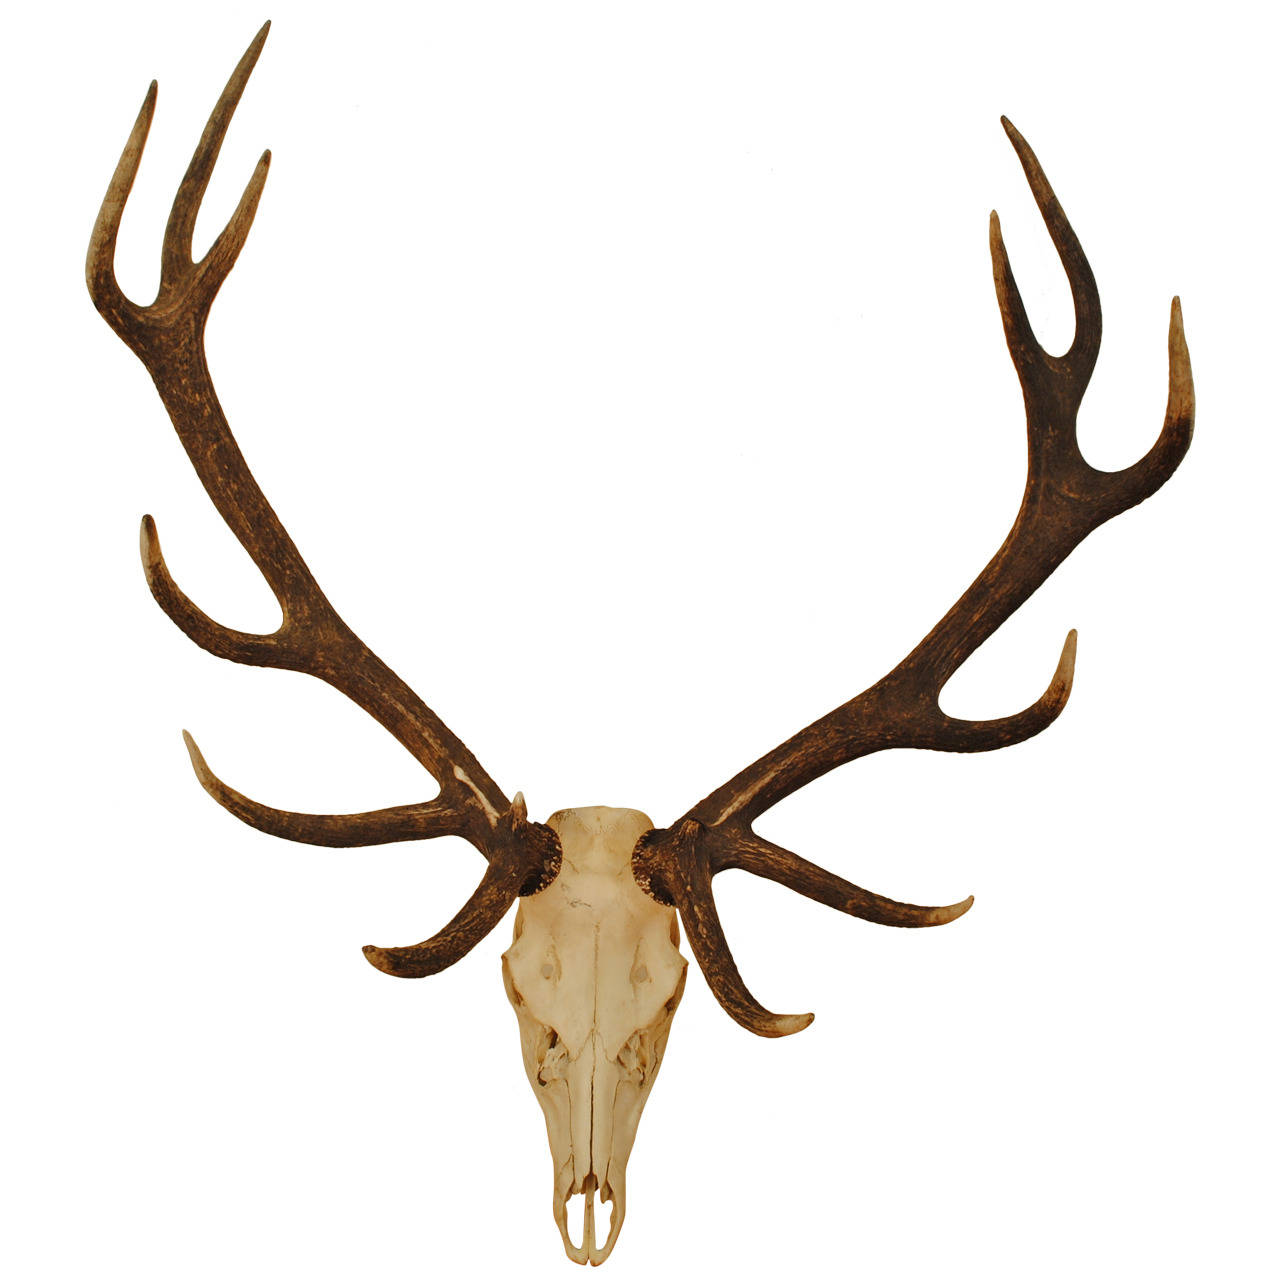 1280x1280 European Mount Deer Skull Clip Art Cliparts